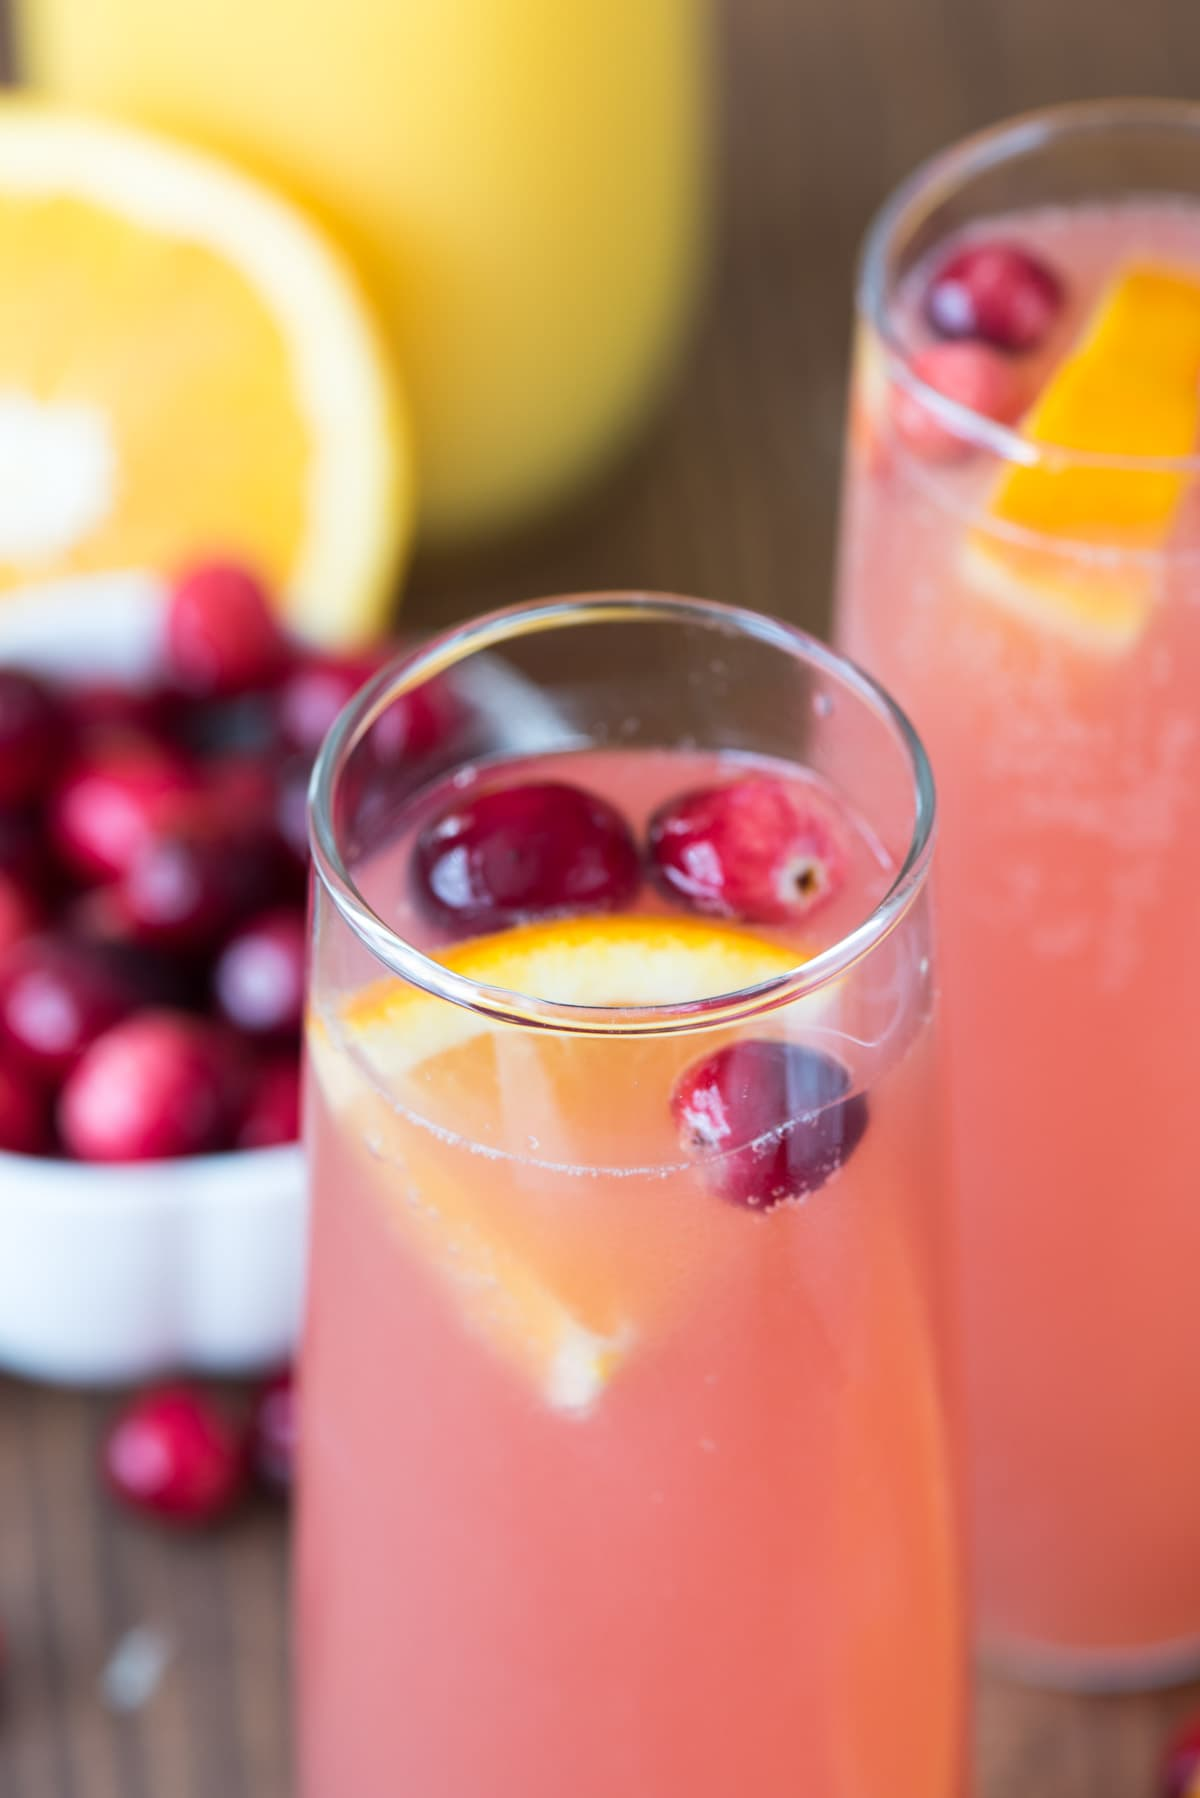 Two Cranberry Orange Bellini Mimosas garnished with cherries and sliced oranges.